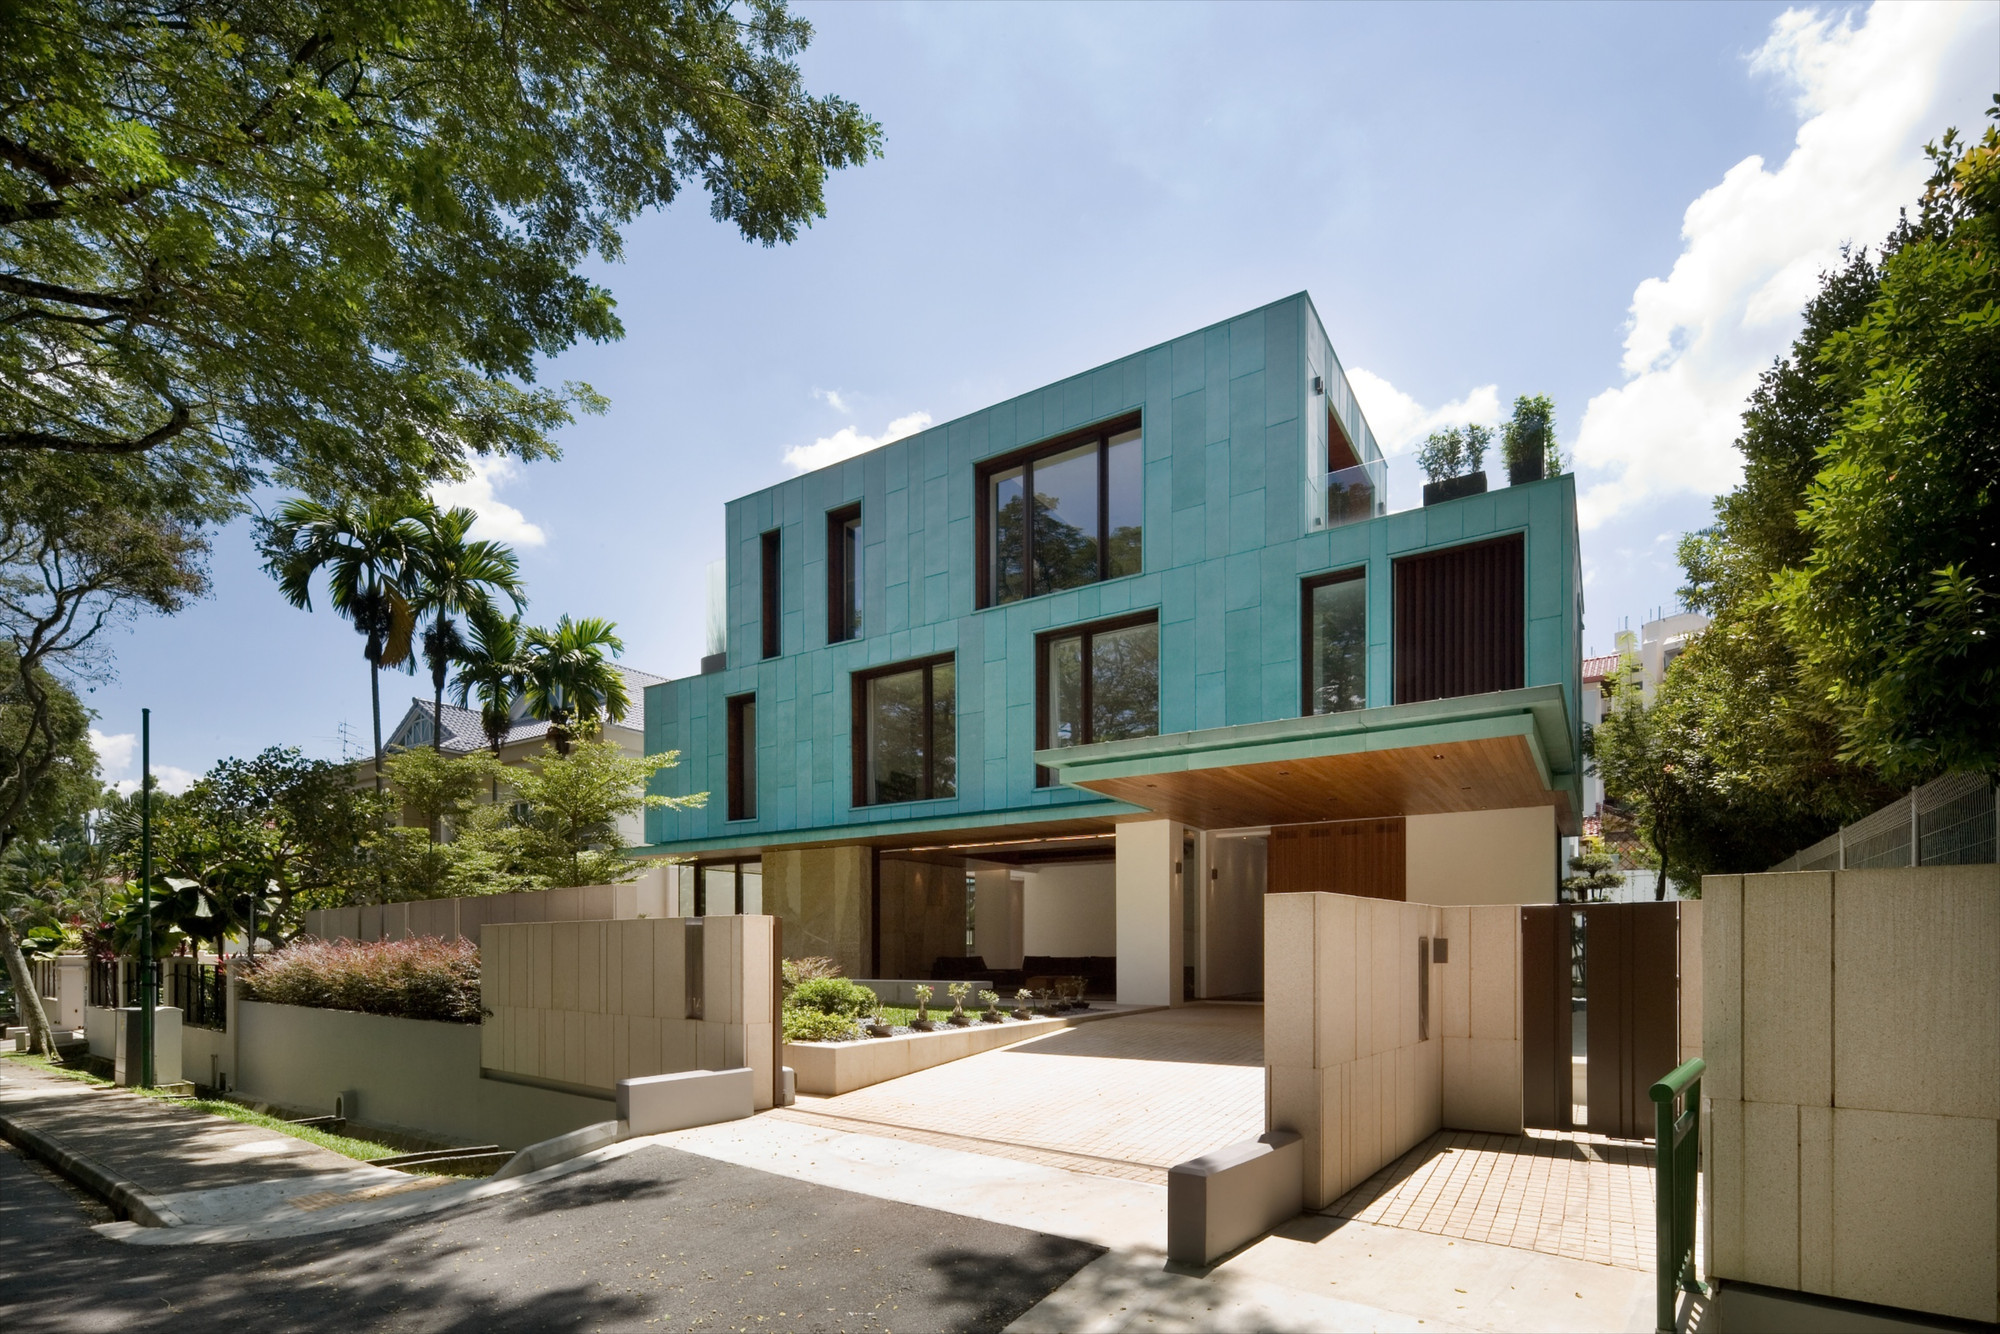 The Green House K2ld Architects Archdaily